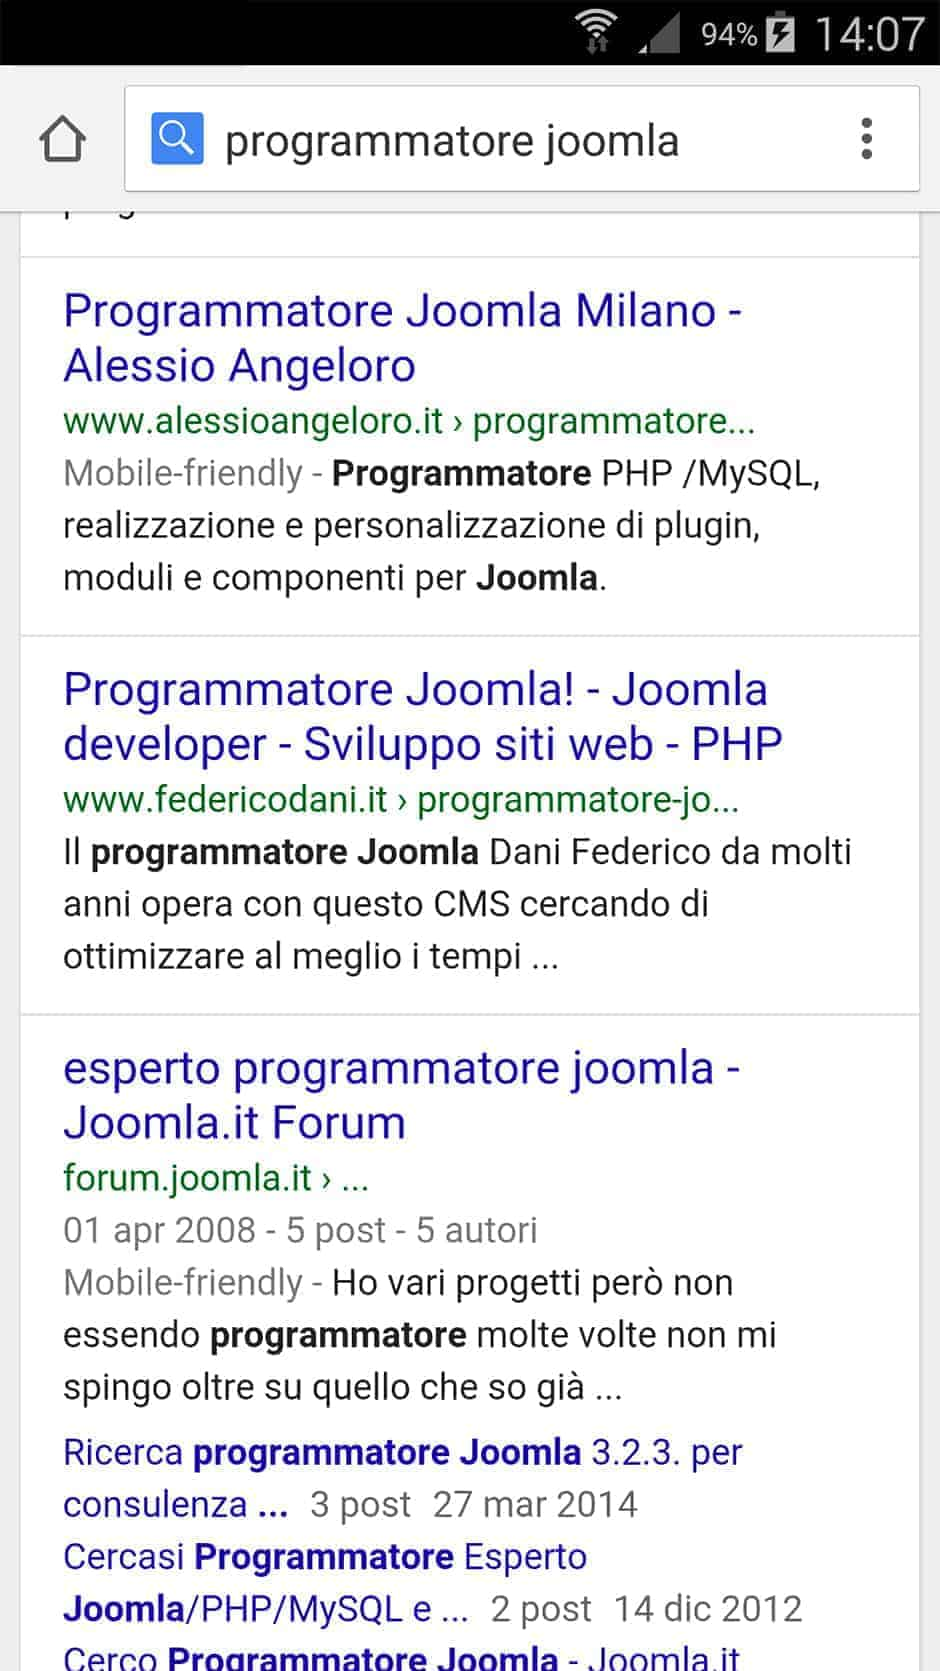 Google snippet mobile-friendly